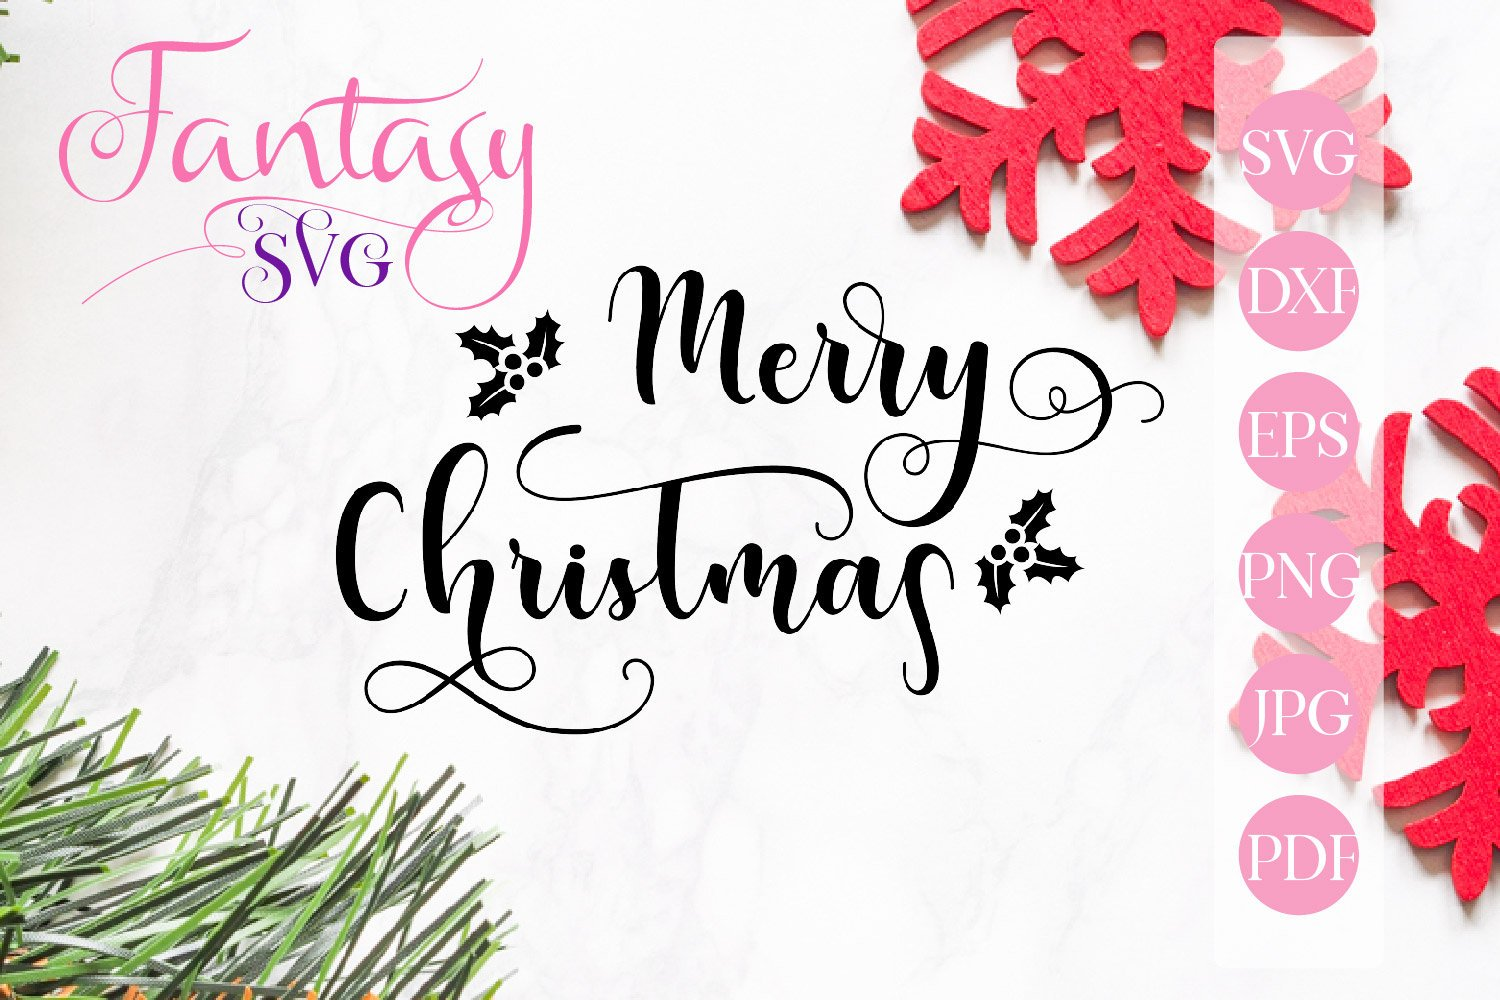 Download Free Merry Christmas Svg Graphic By Fantasy Svg Creative Fabrica for Cricut Explore, Silhouette and other cutting machines.